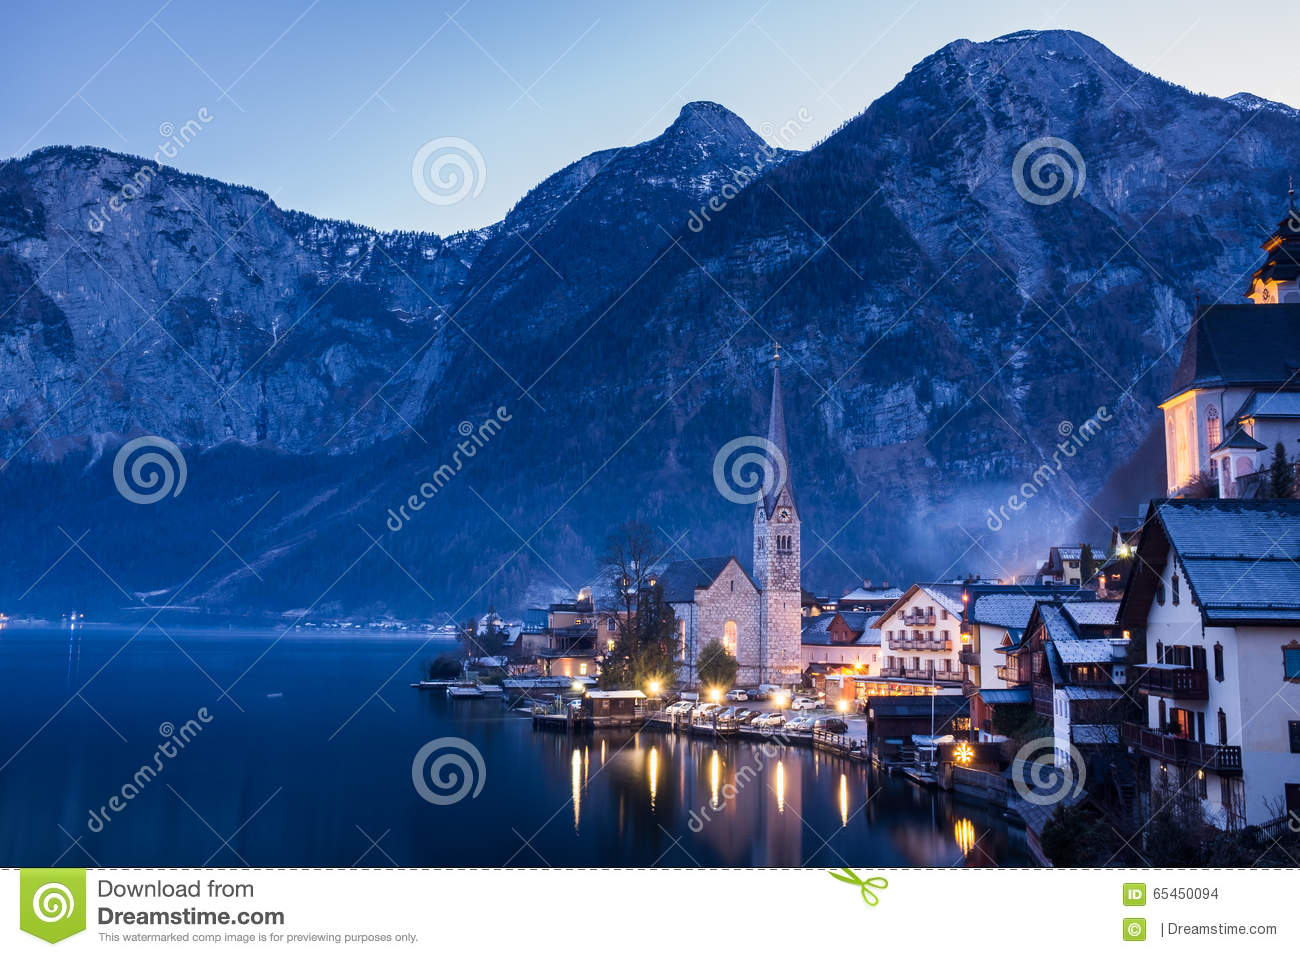 Classic View of Hallstatt Village, Austria